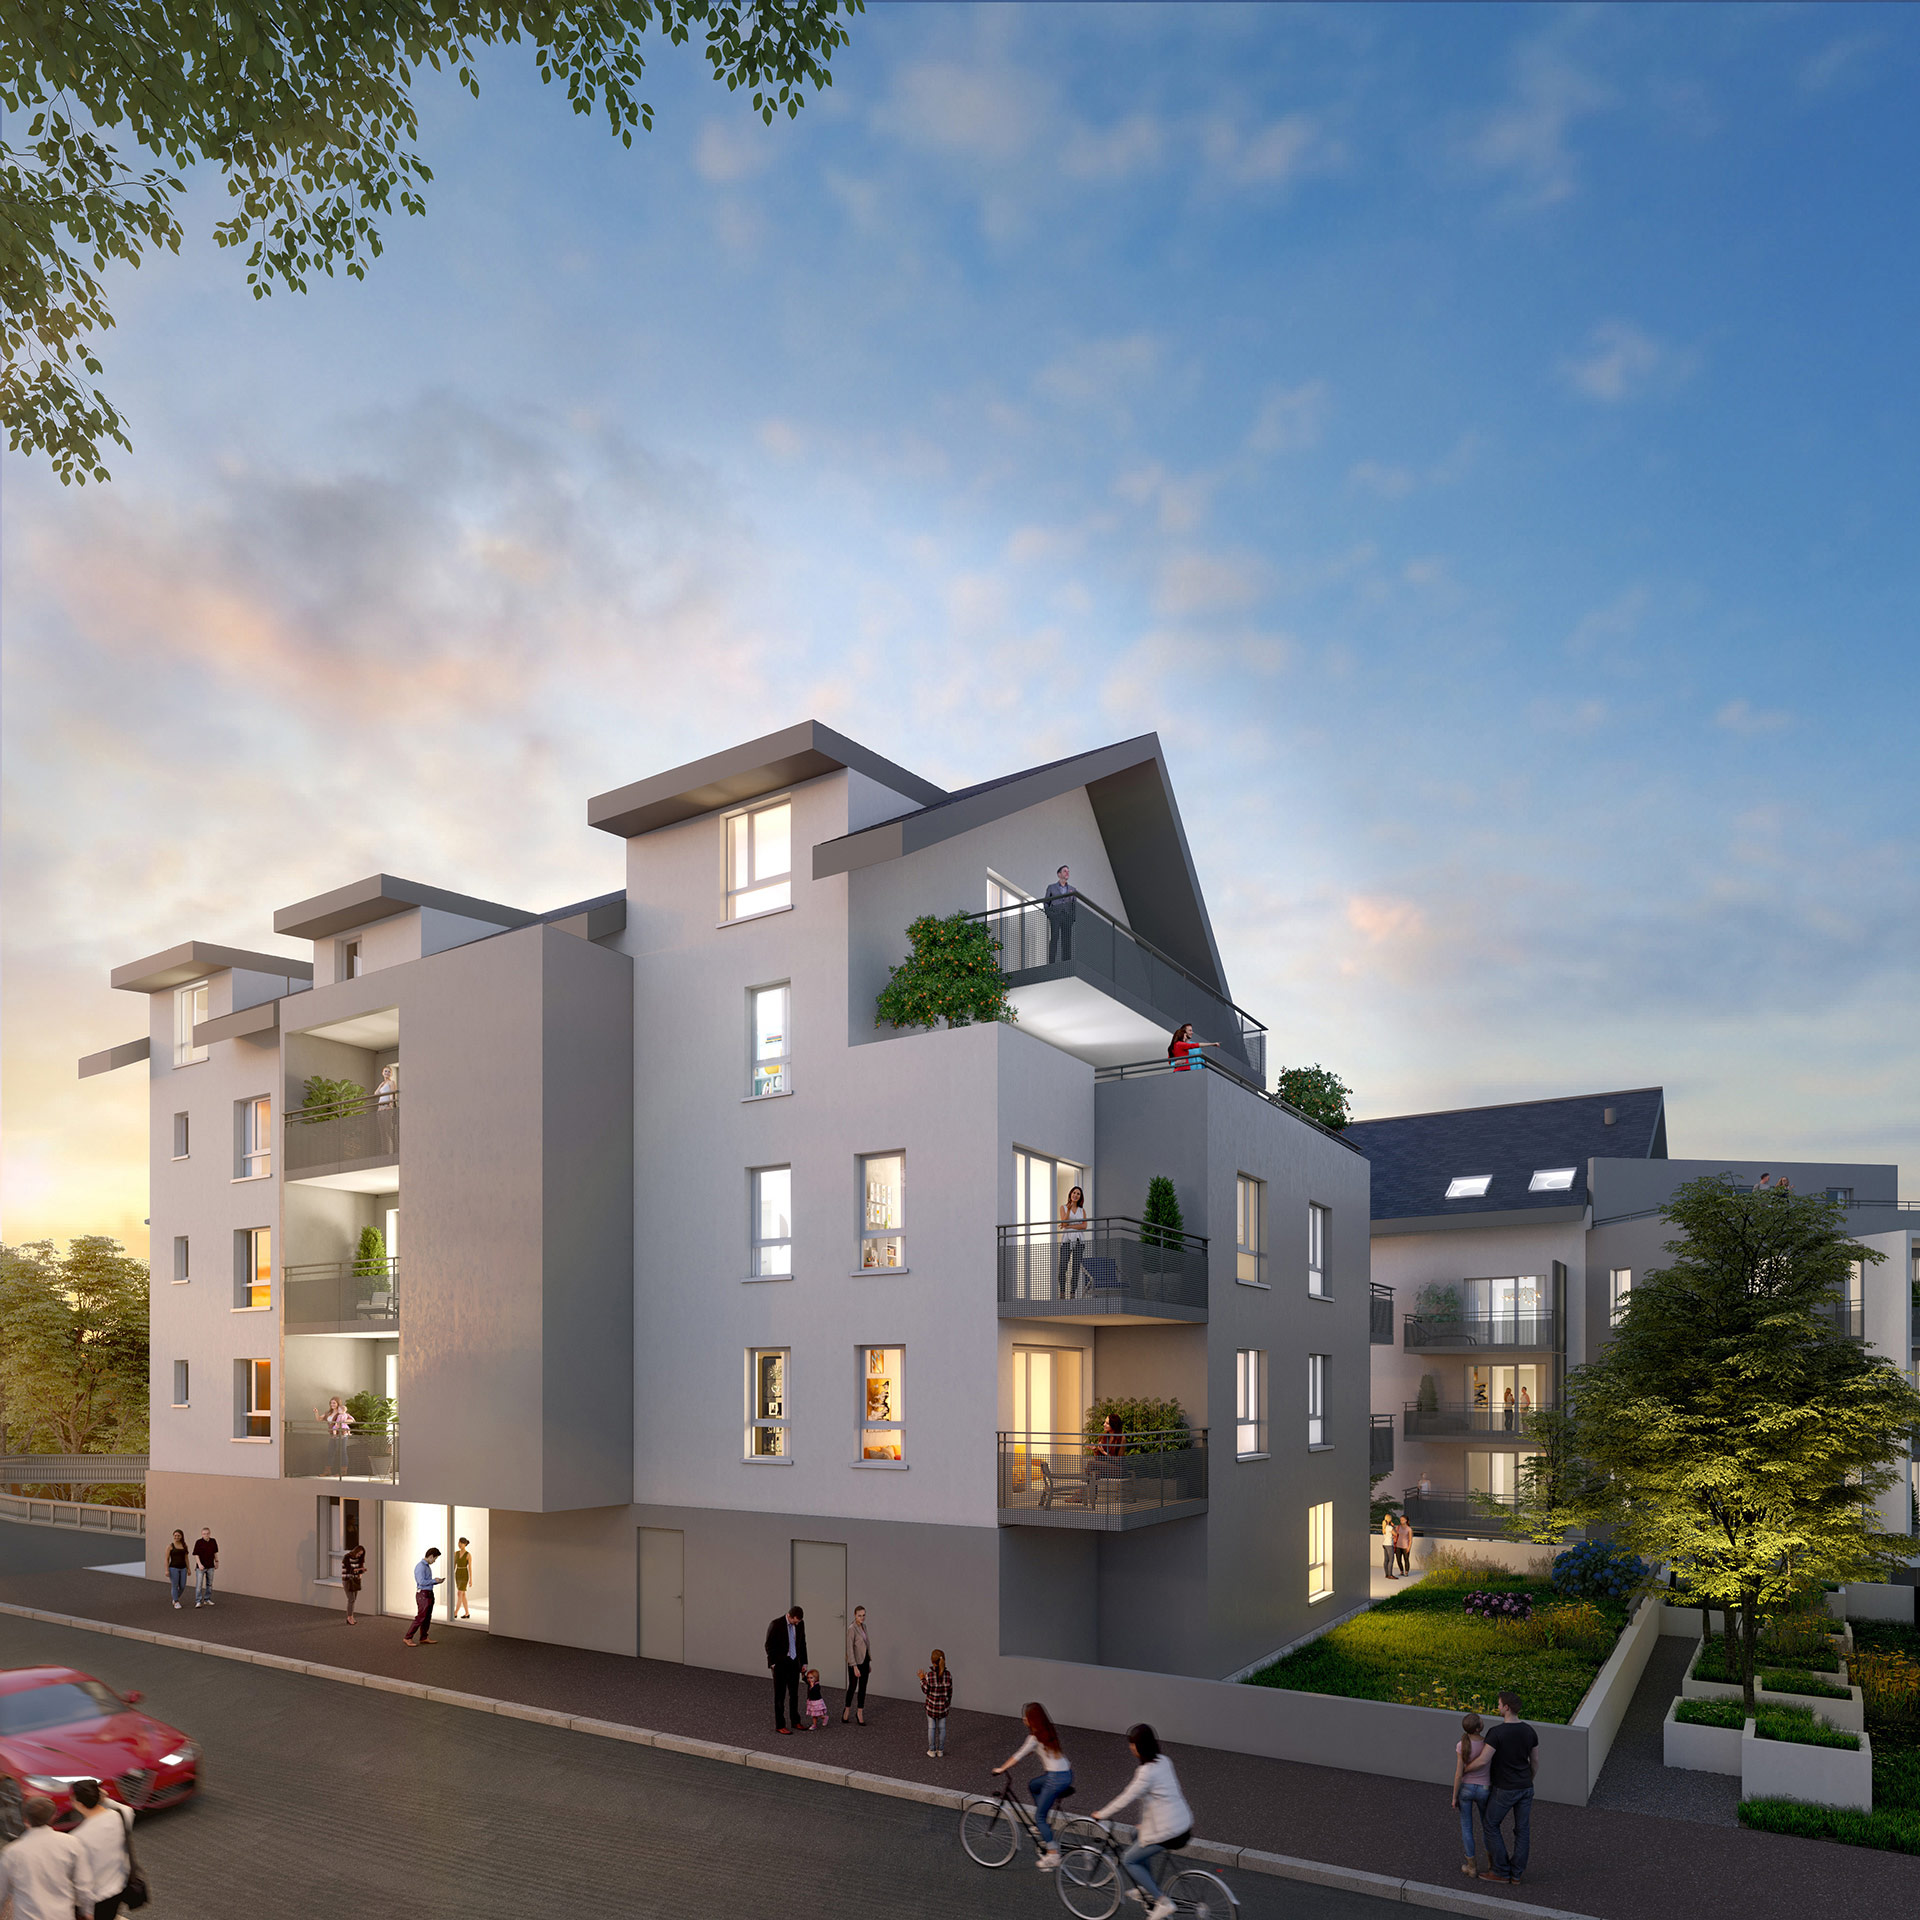 3D Architectural visualization of a building for real estate promotion